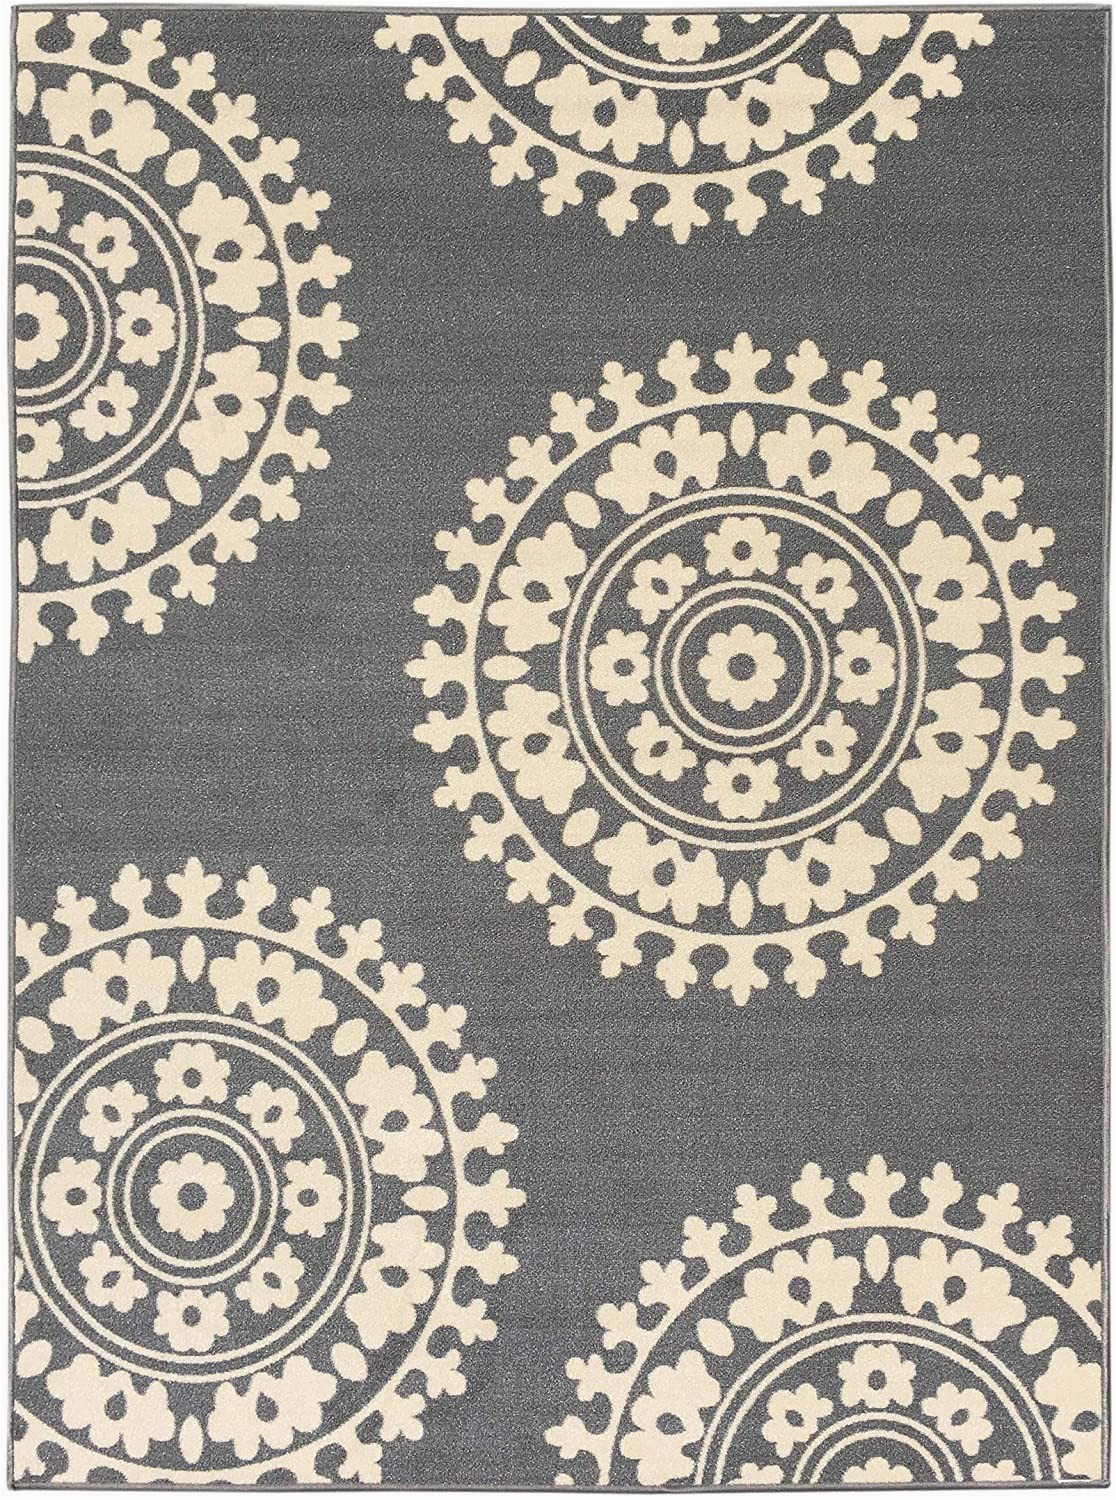 Rubber Backed area Rugs 8×10 Qute Home European Medallion Non Slip Rubber Backed area Rugs & Runner Rug Grey Ivory 3 Ft X 5 Ft area Rug